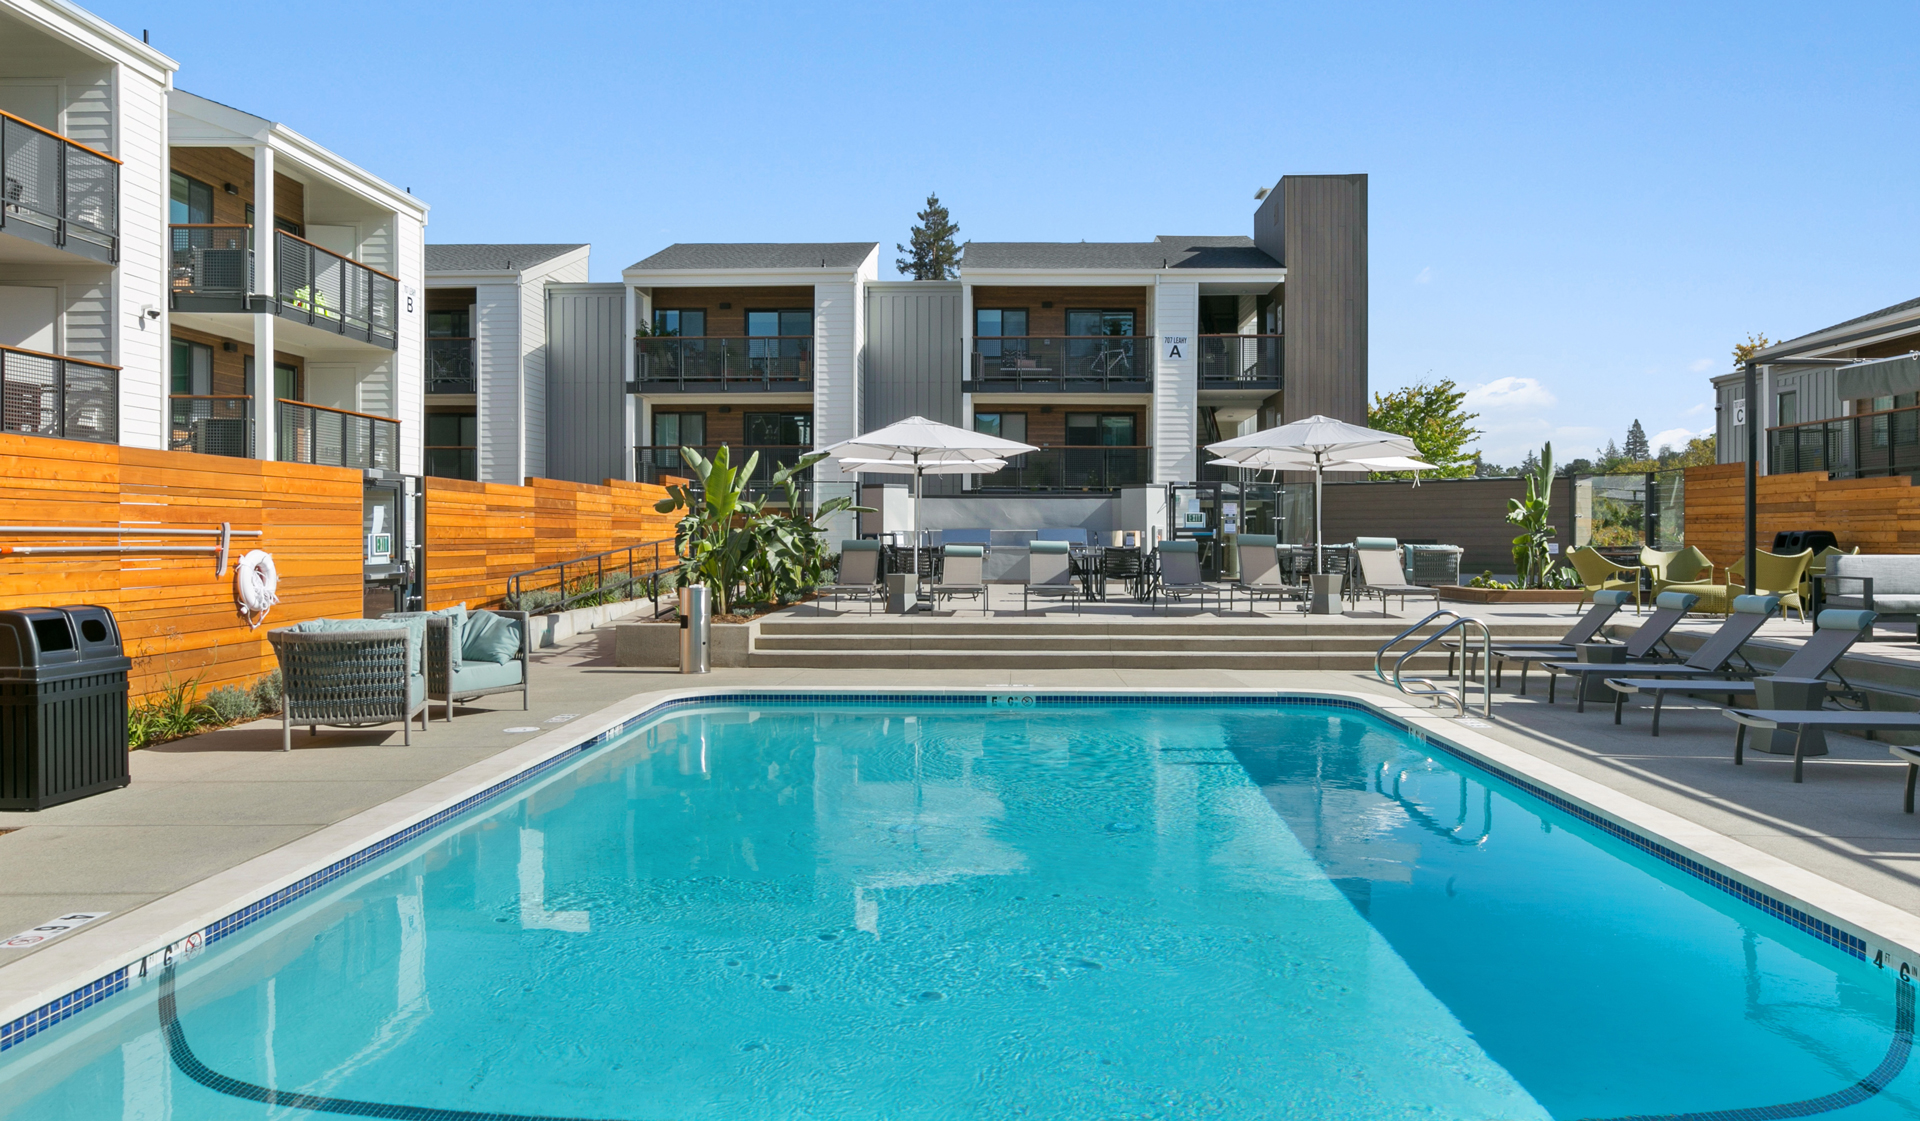 707 Leahy Apartments - Redwood City, CA - pool